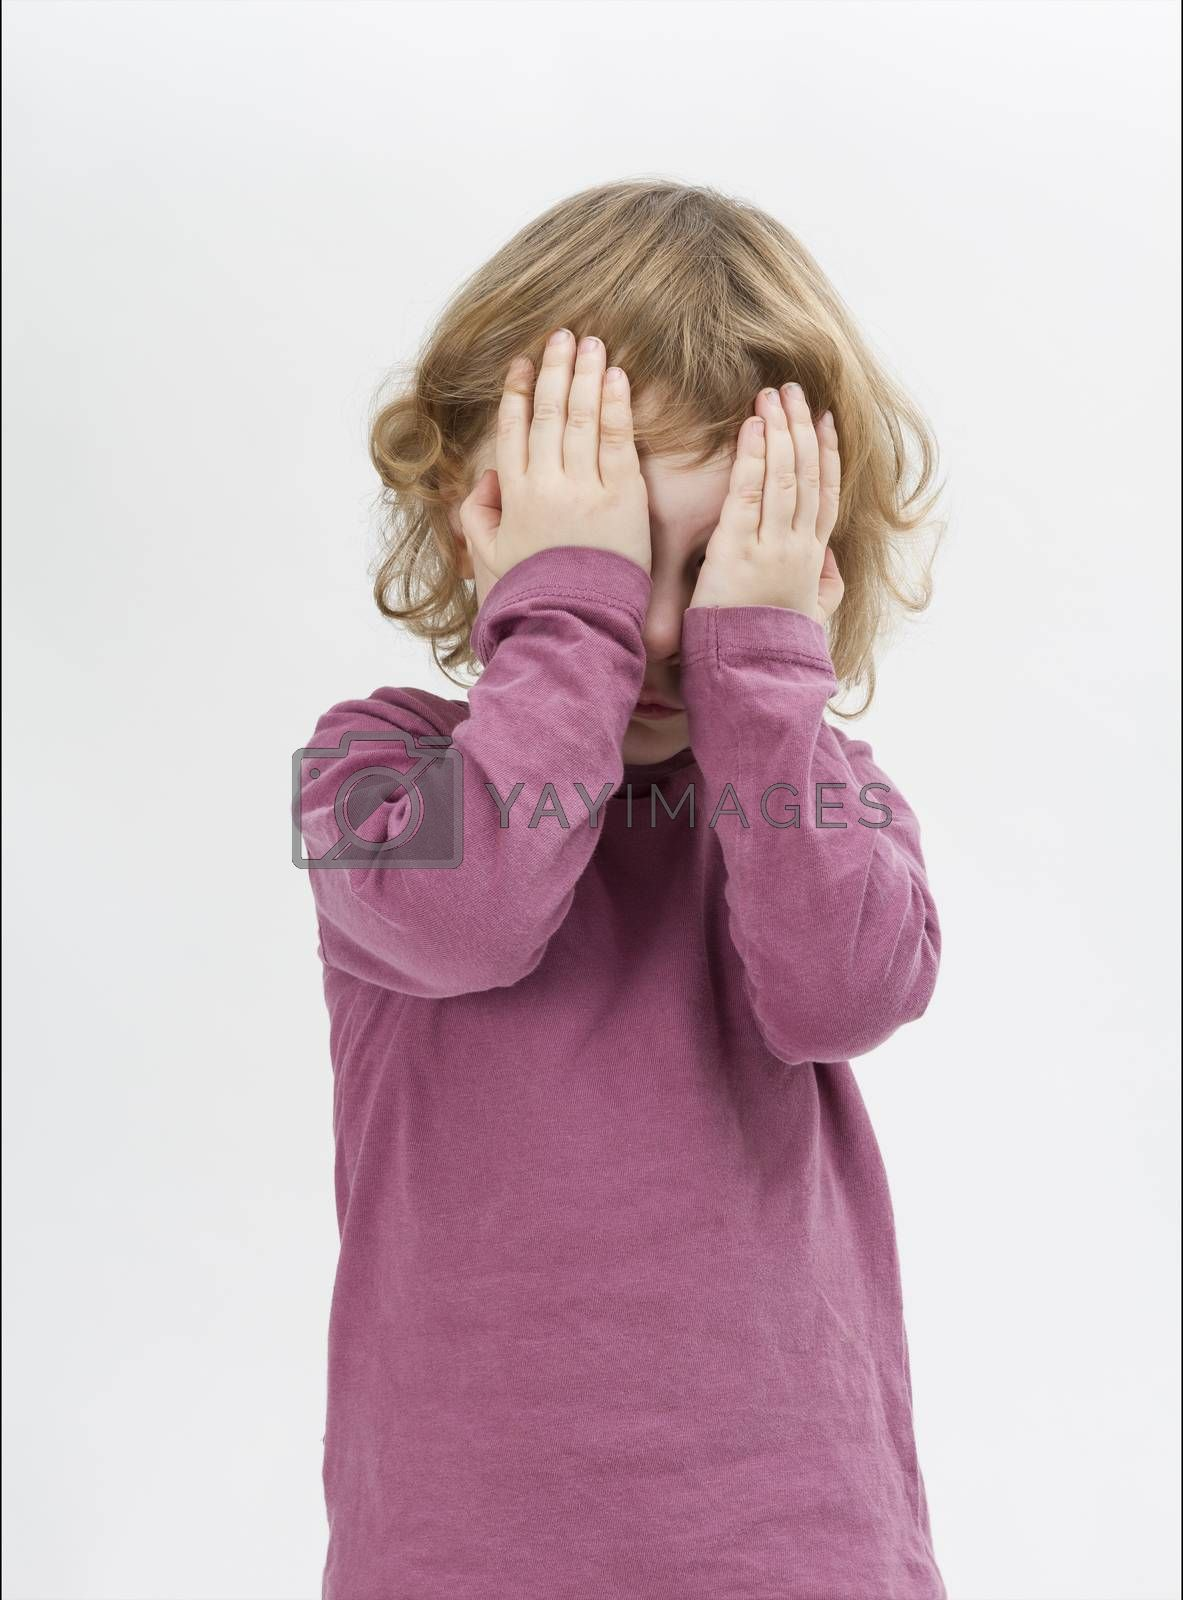 child covering eyes with hands. studio shot in grey background